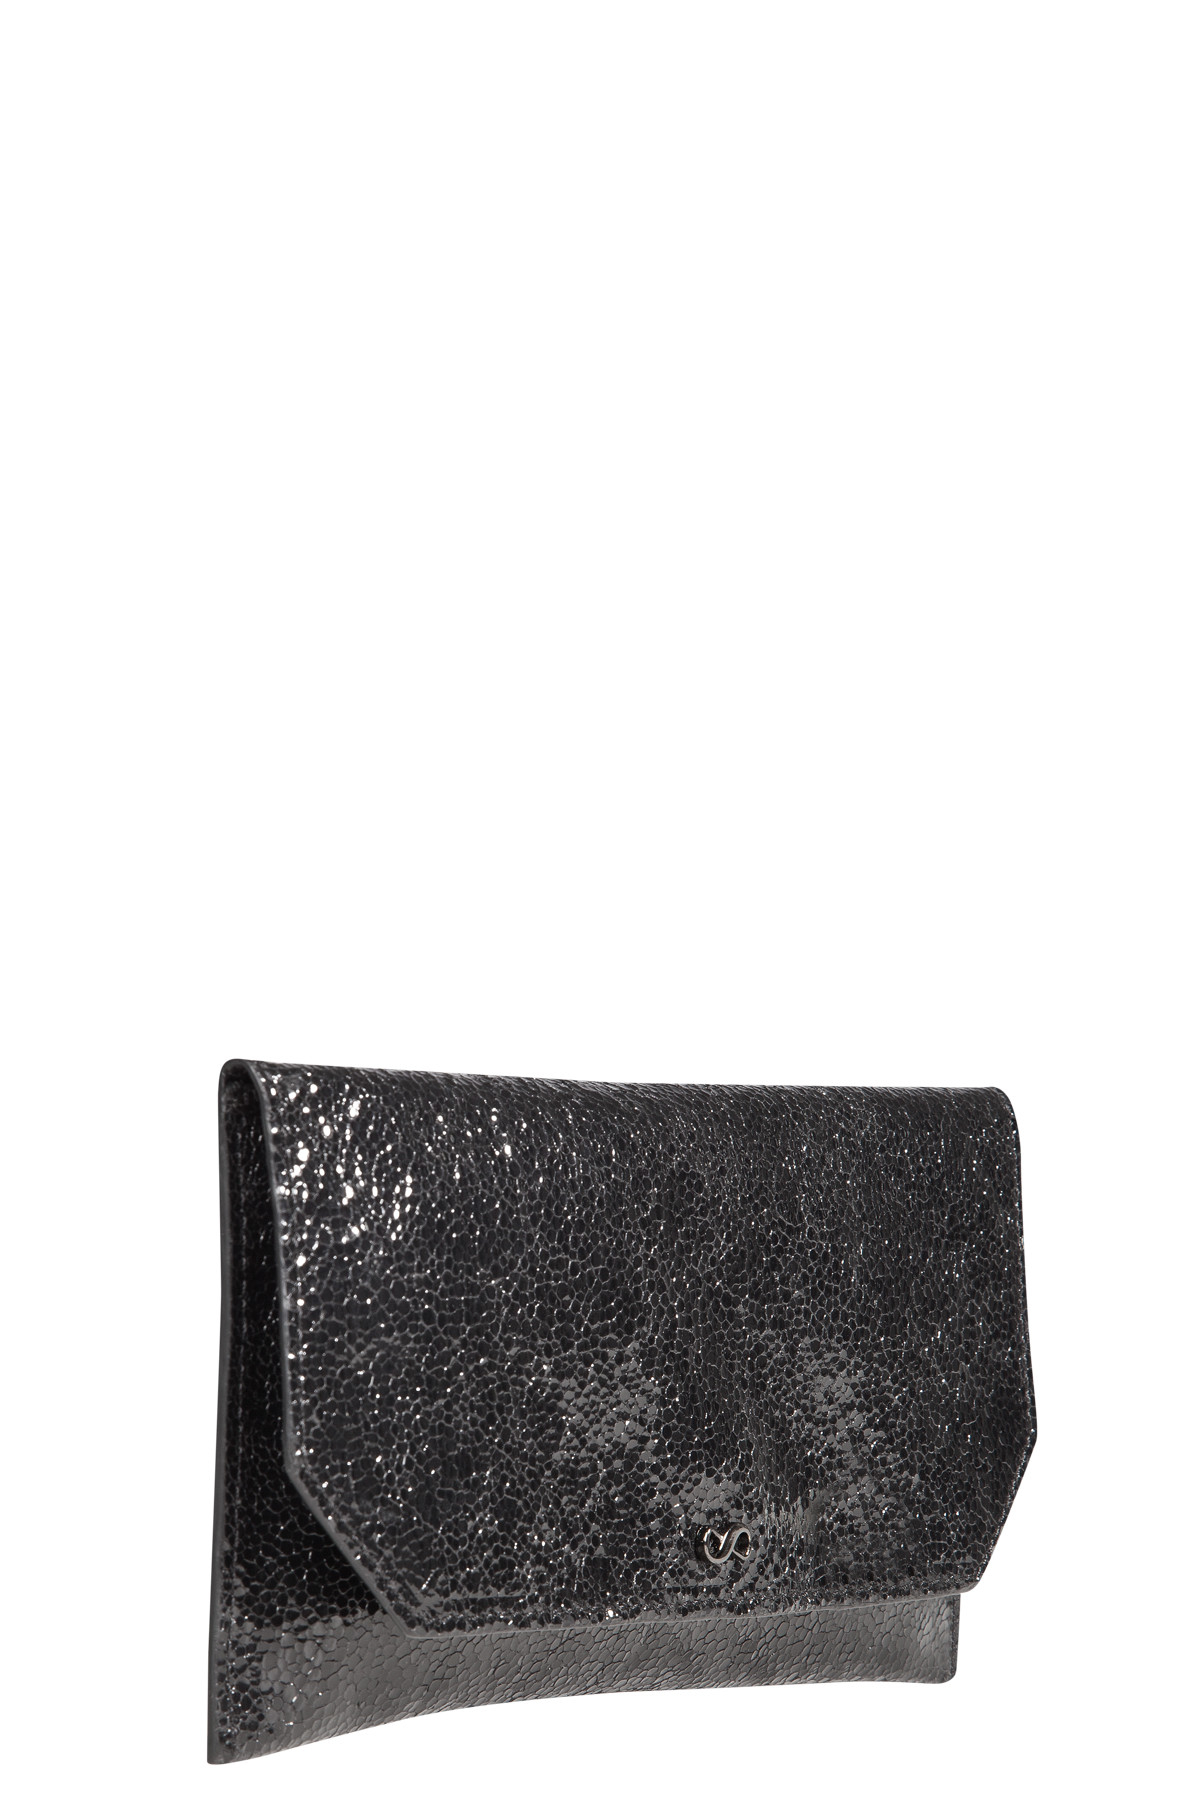 STUDDED ATTITUDE piercing detail neoprene bag with key chain decoration Dorothee Schumacher nuflgxaQF